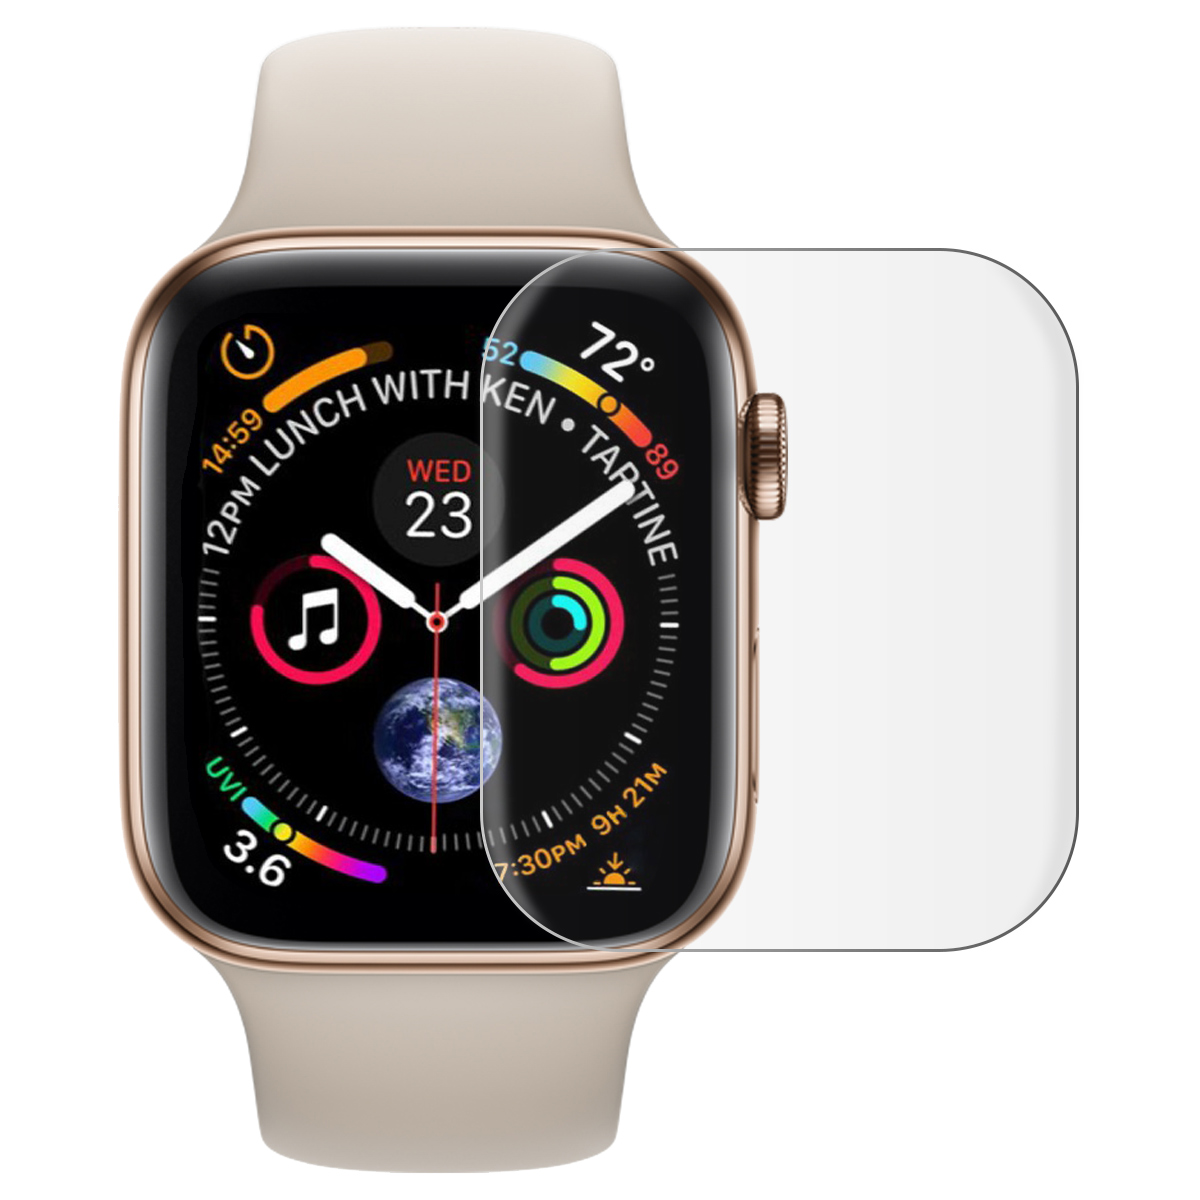 9H Ultra Thin Tempered Glass For Apple Watch Series 1 2 3 4 Screen Protector Protective Film For Iwatch 44mm 40mm 38mm 42 Mm